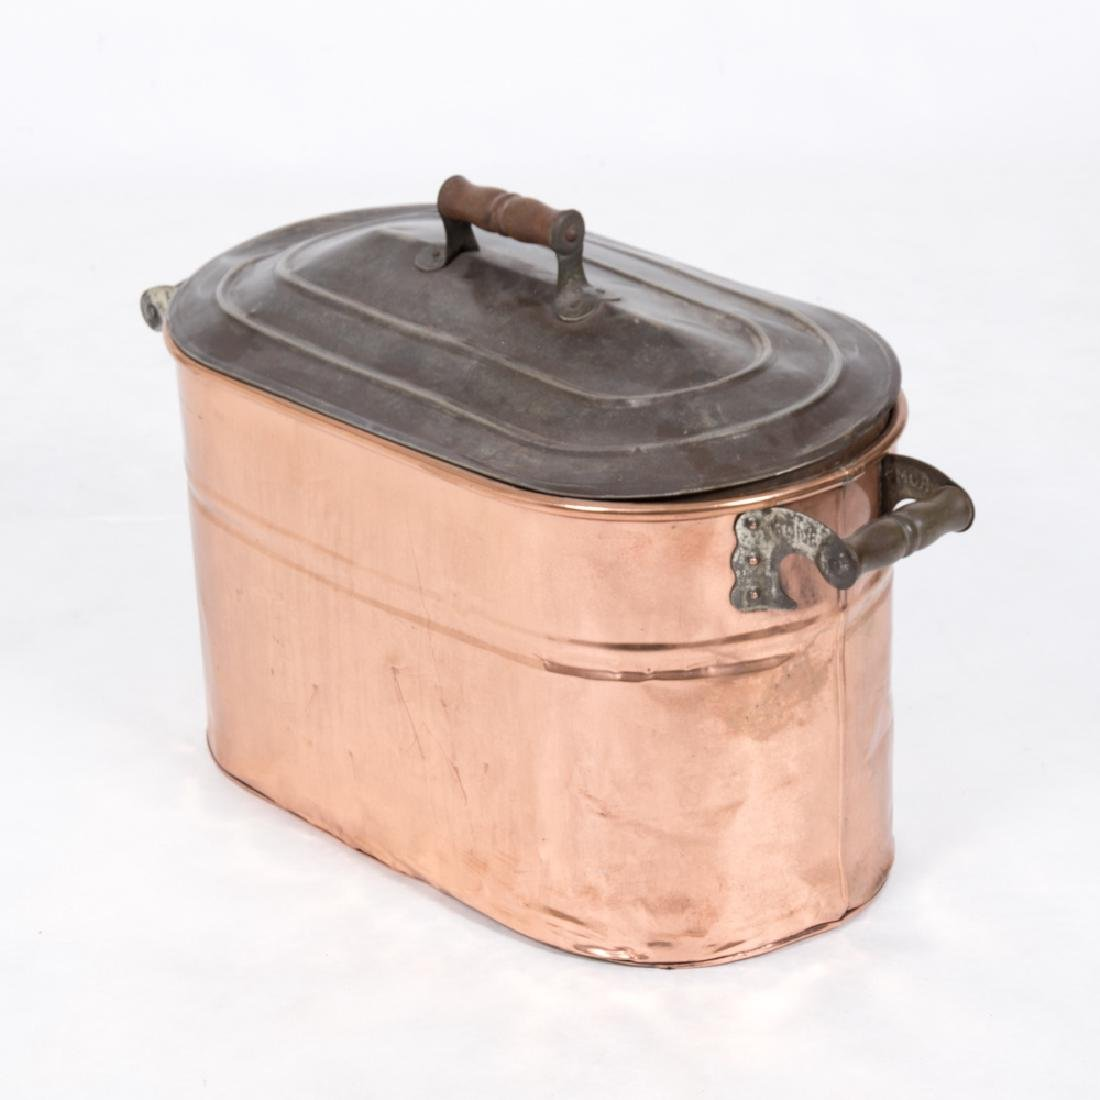 An Antique Rome Company Copper Oval Cooking Vessel with